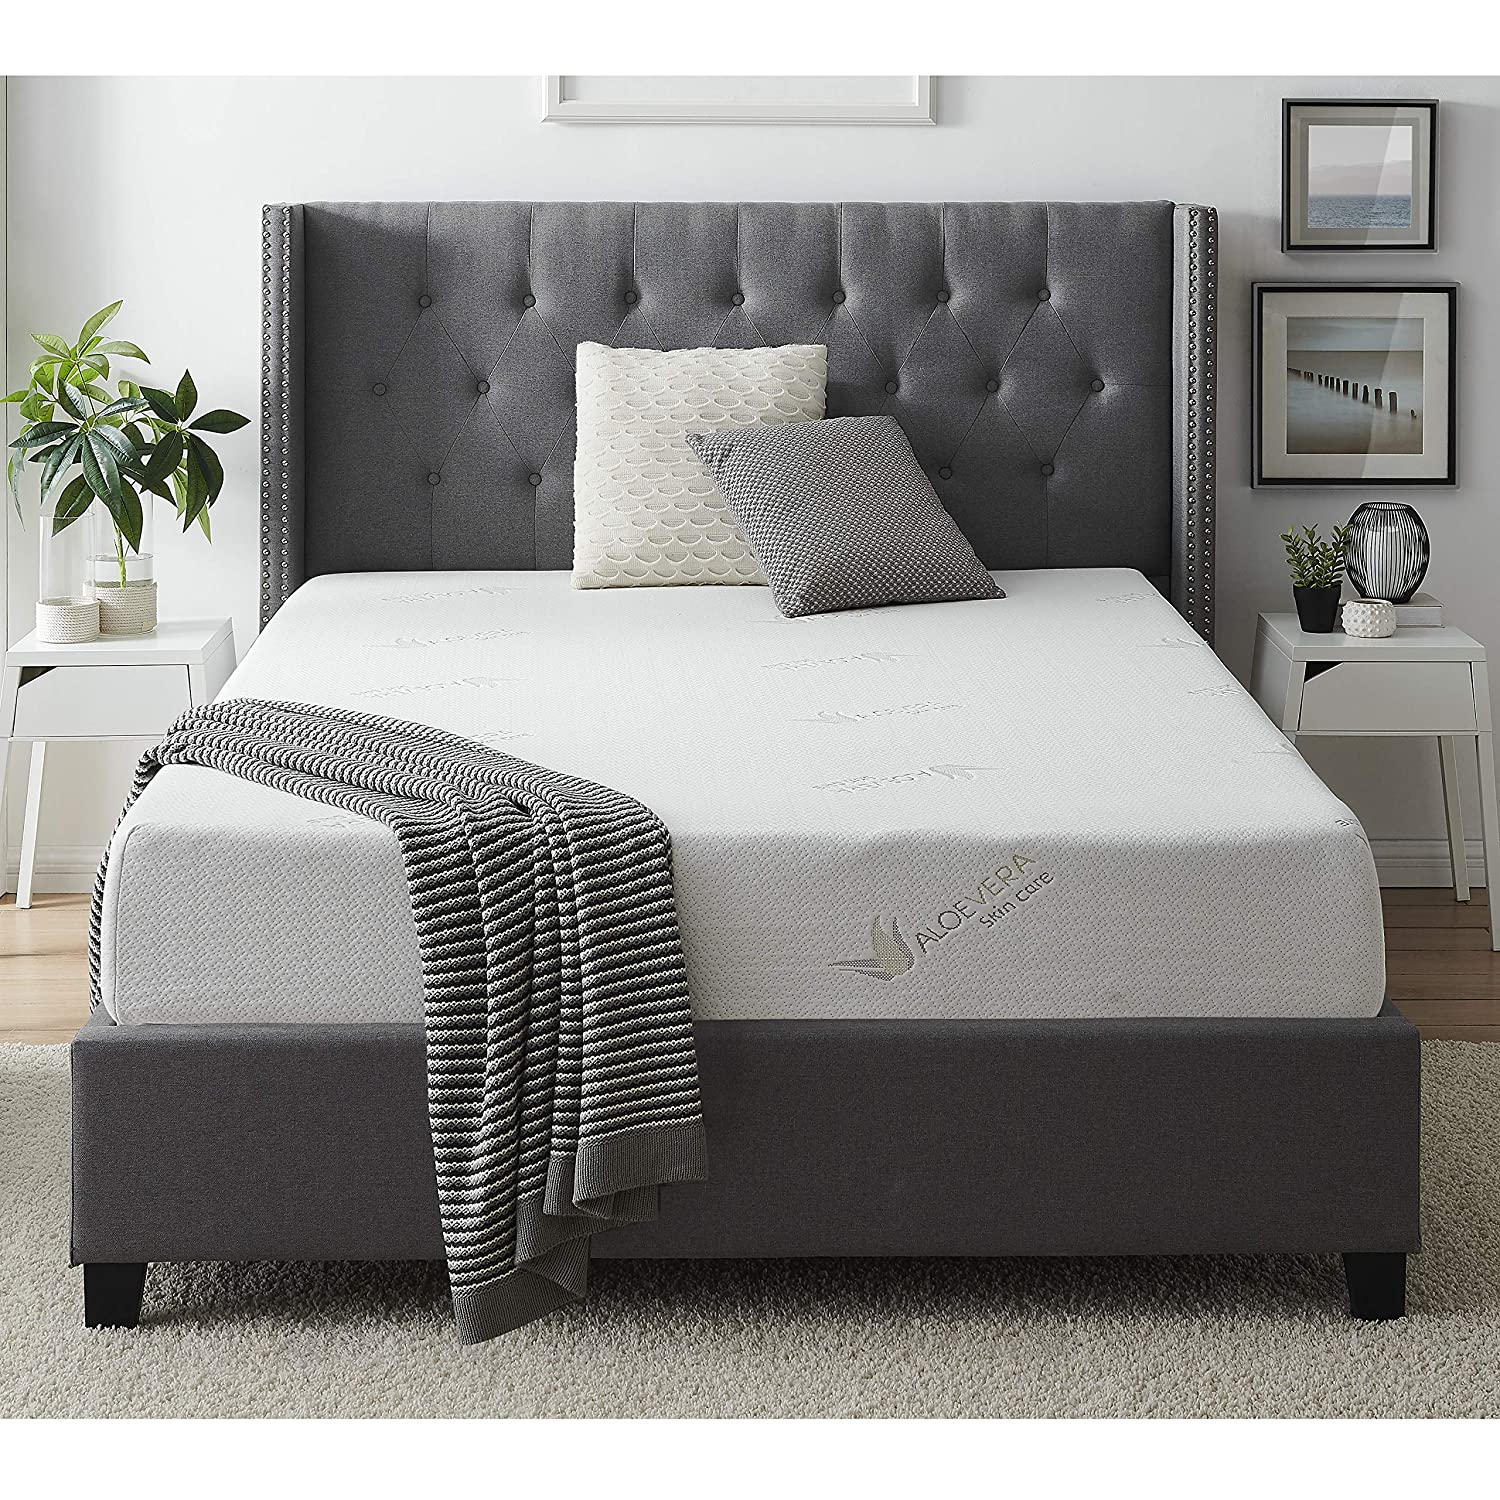 Amazon.com: AC Pacific Soft Aloe Collection 8 Inch Luxury Soft Bedroom Aloe Vera Extract Infused Fabric Covered Memory Foam Mattress, Full Size: Kitchen & ...